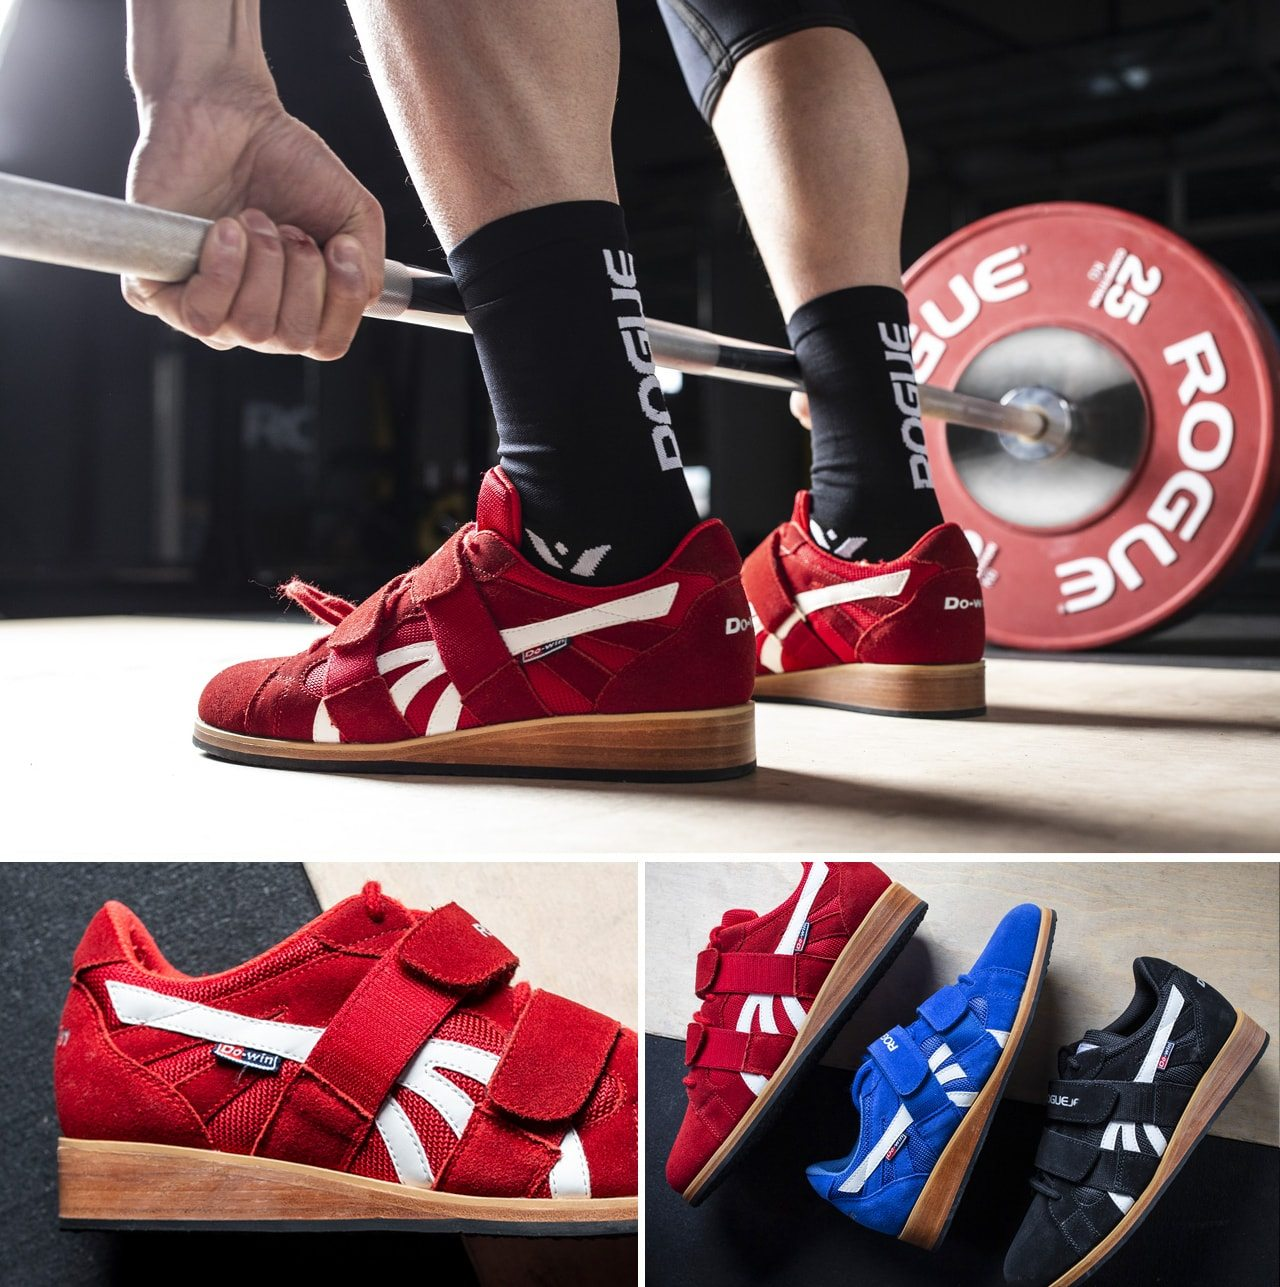 380fffdfa1d2 Just Launched  Do-Win Classic Lifter   More! - Rogue Fitness Email ...